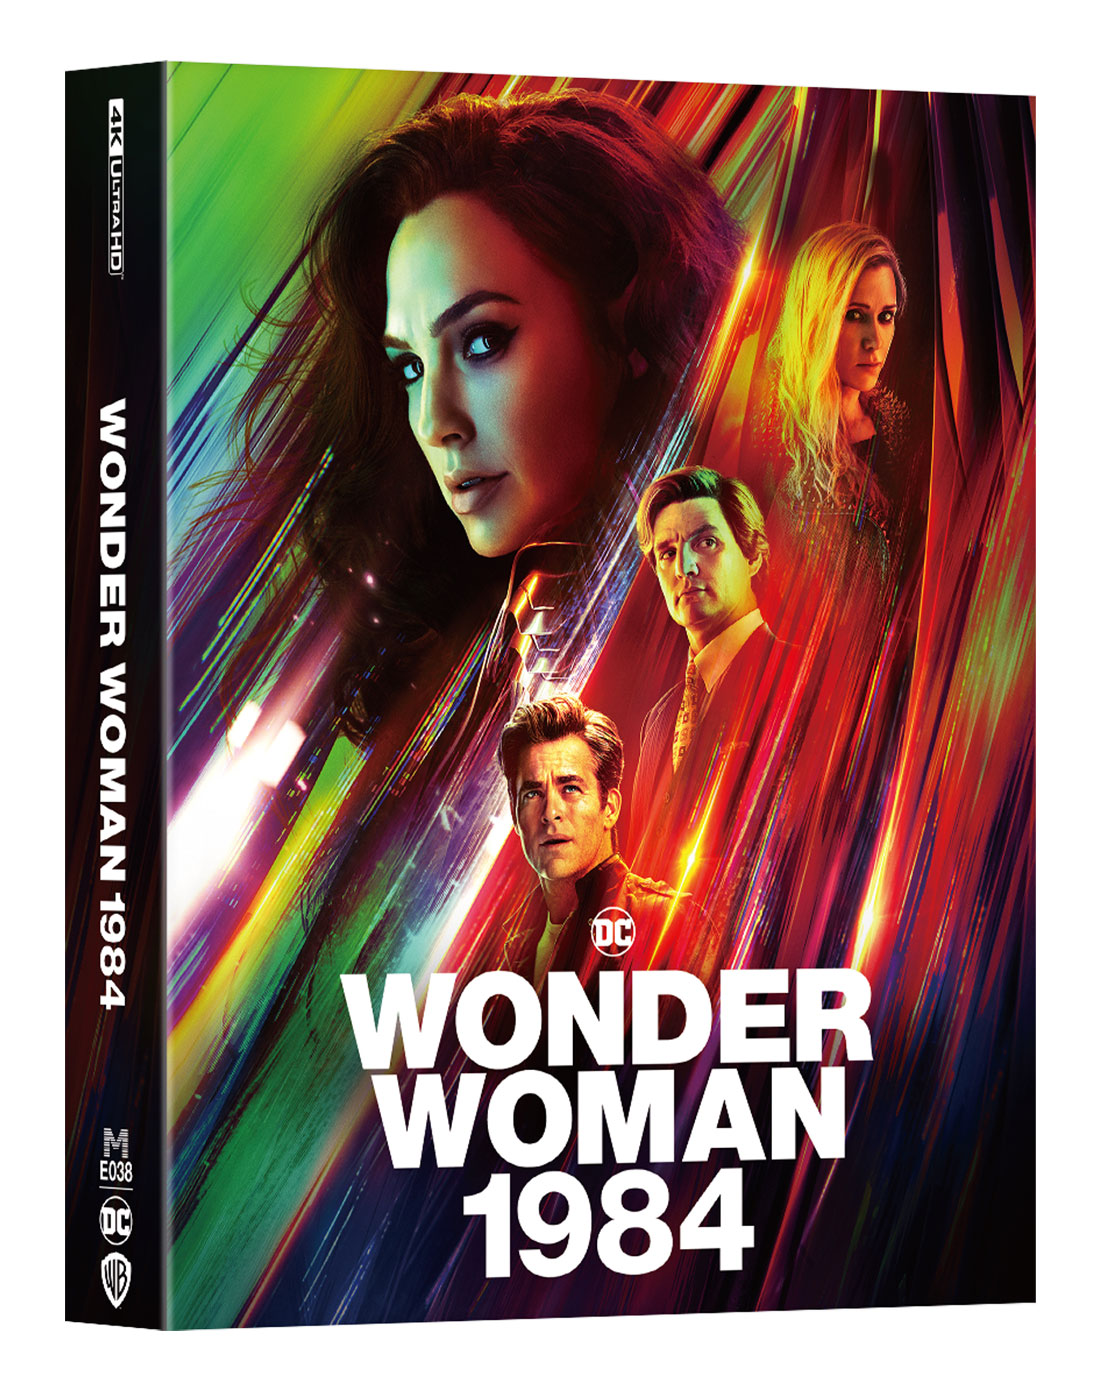 [ME#38] Wonder Woman 1984 Steelbook (Double Lenticular Full Slip)